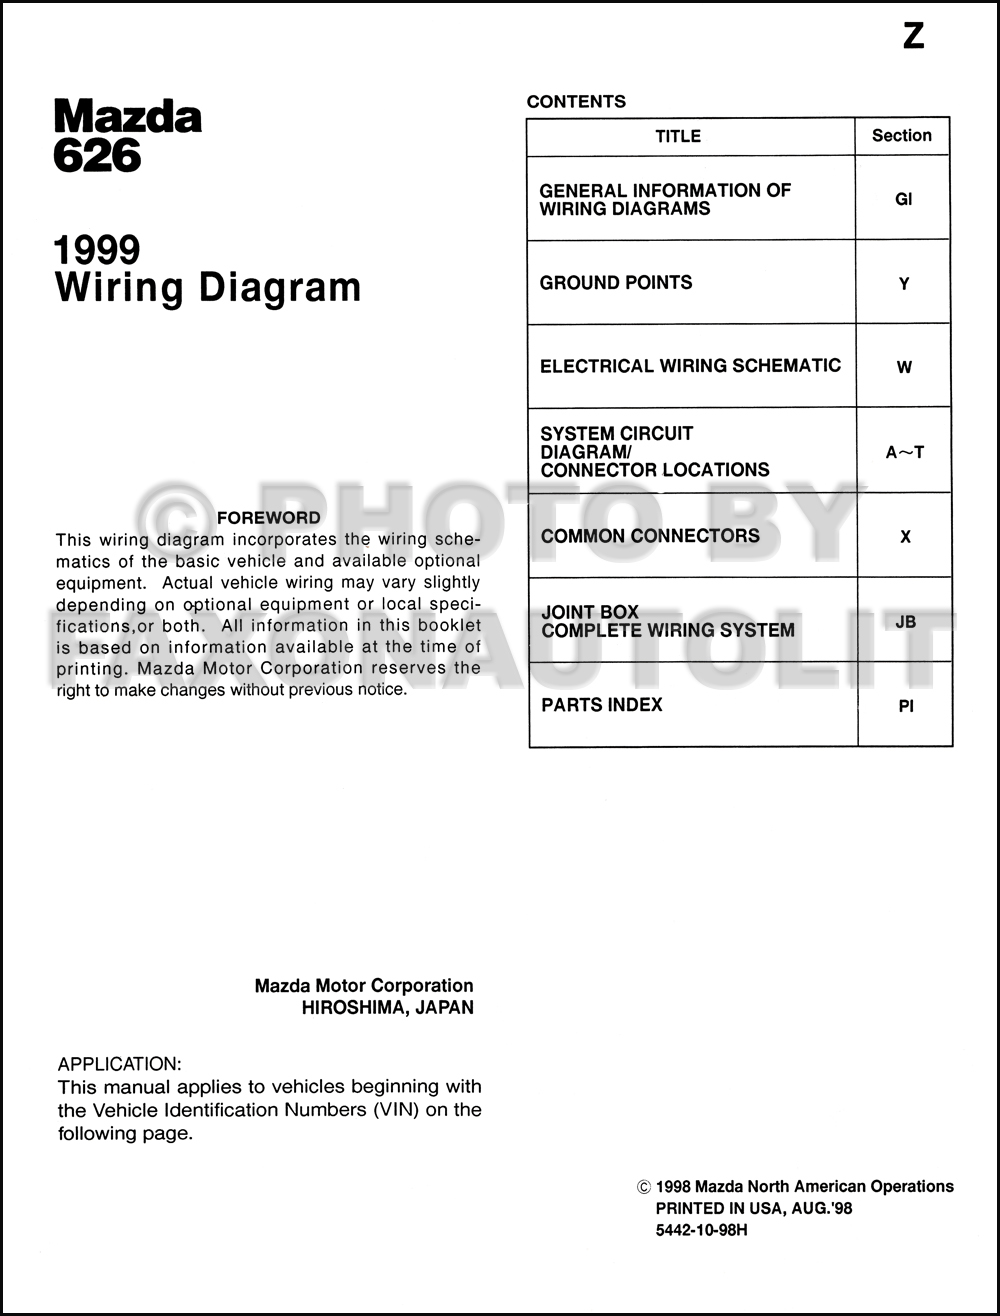 1999 Mazda 626 Wiring Diagram Manual Original